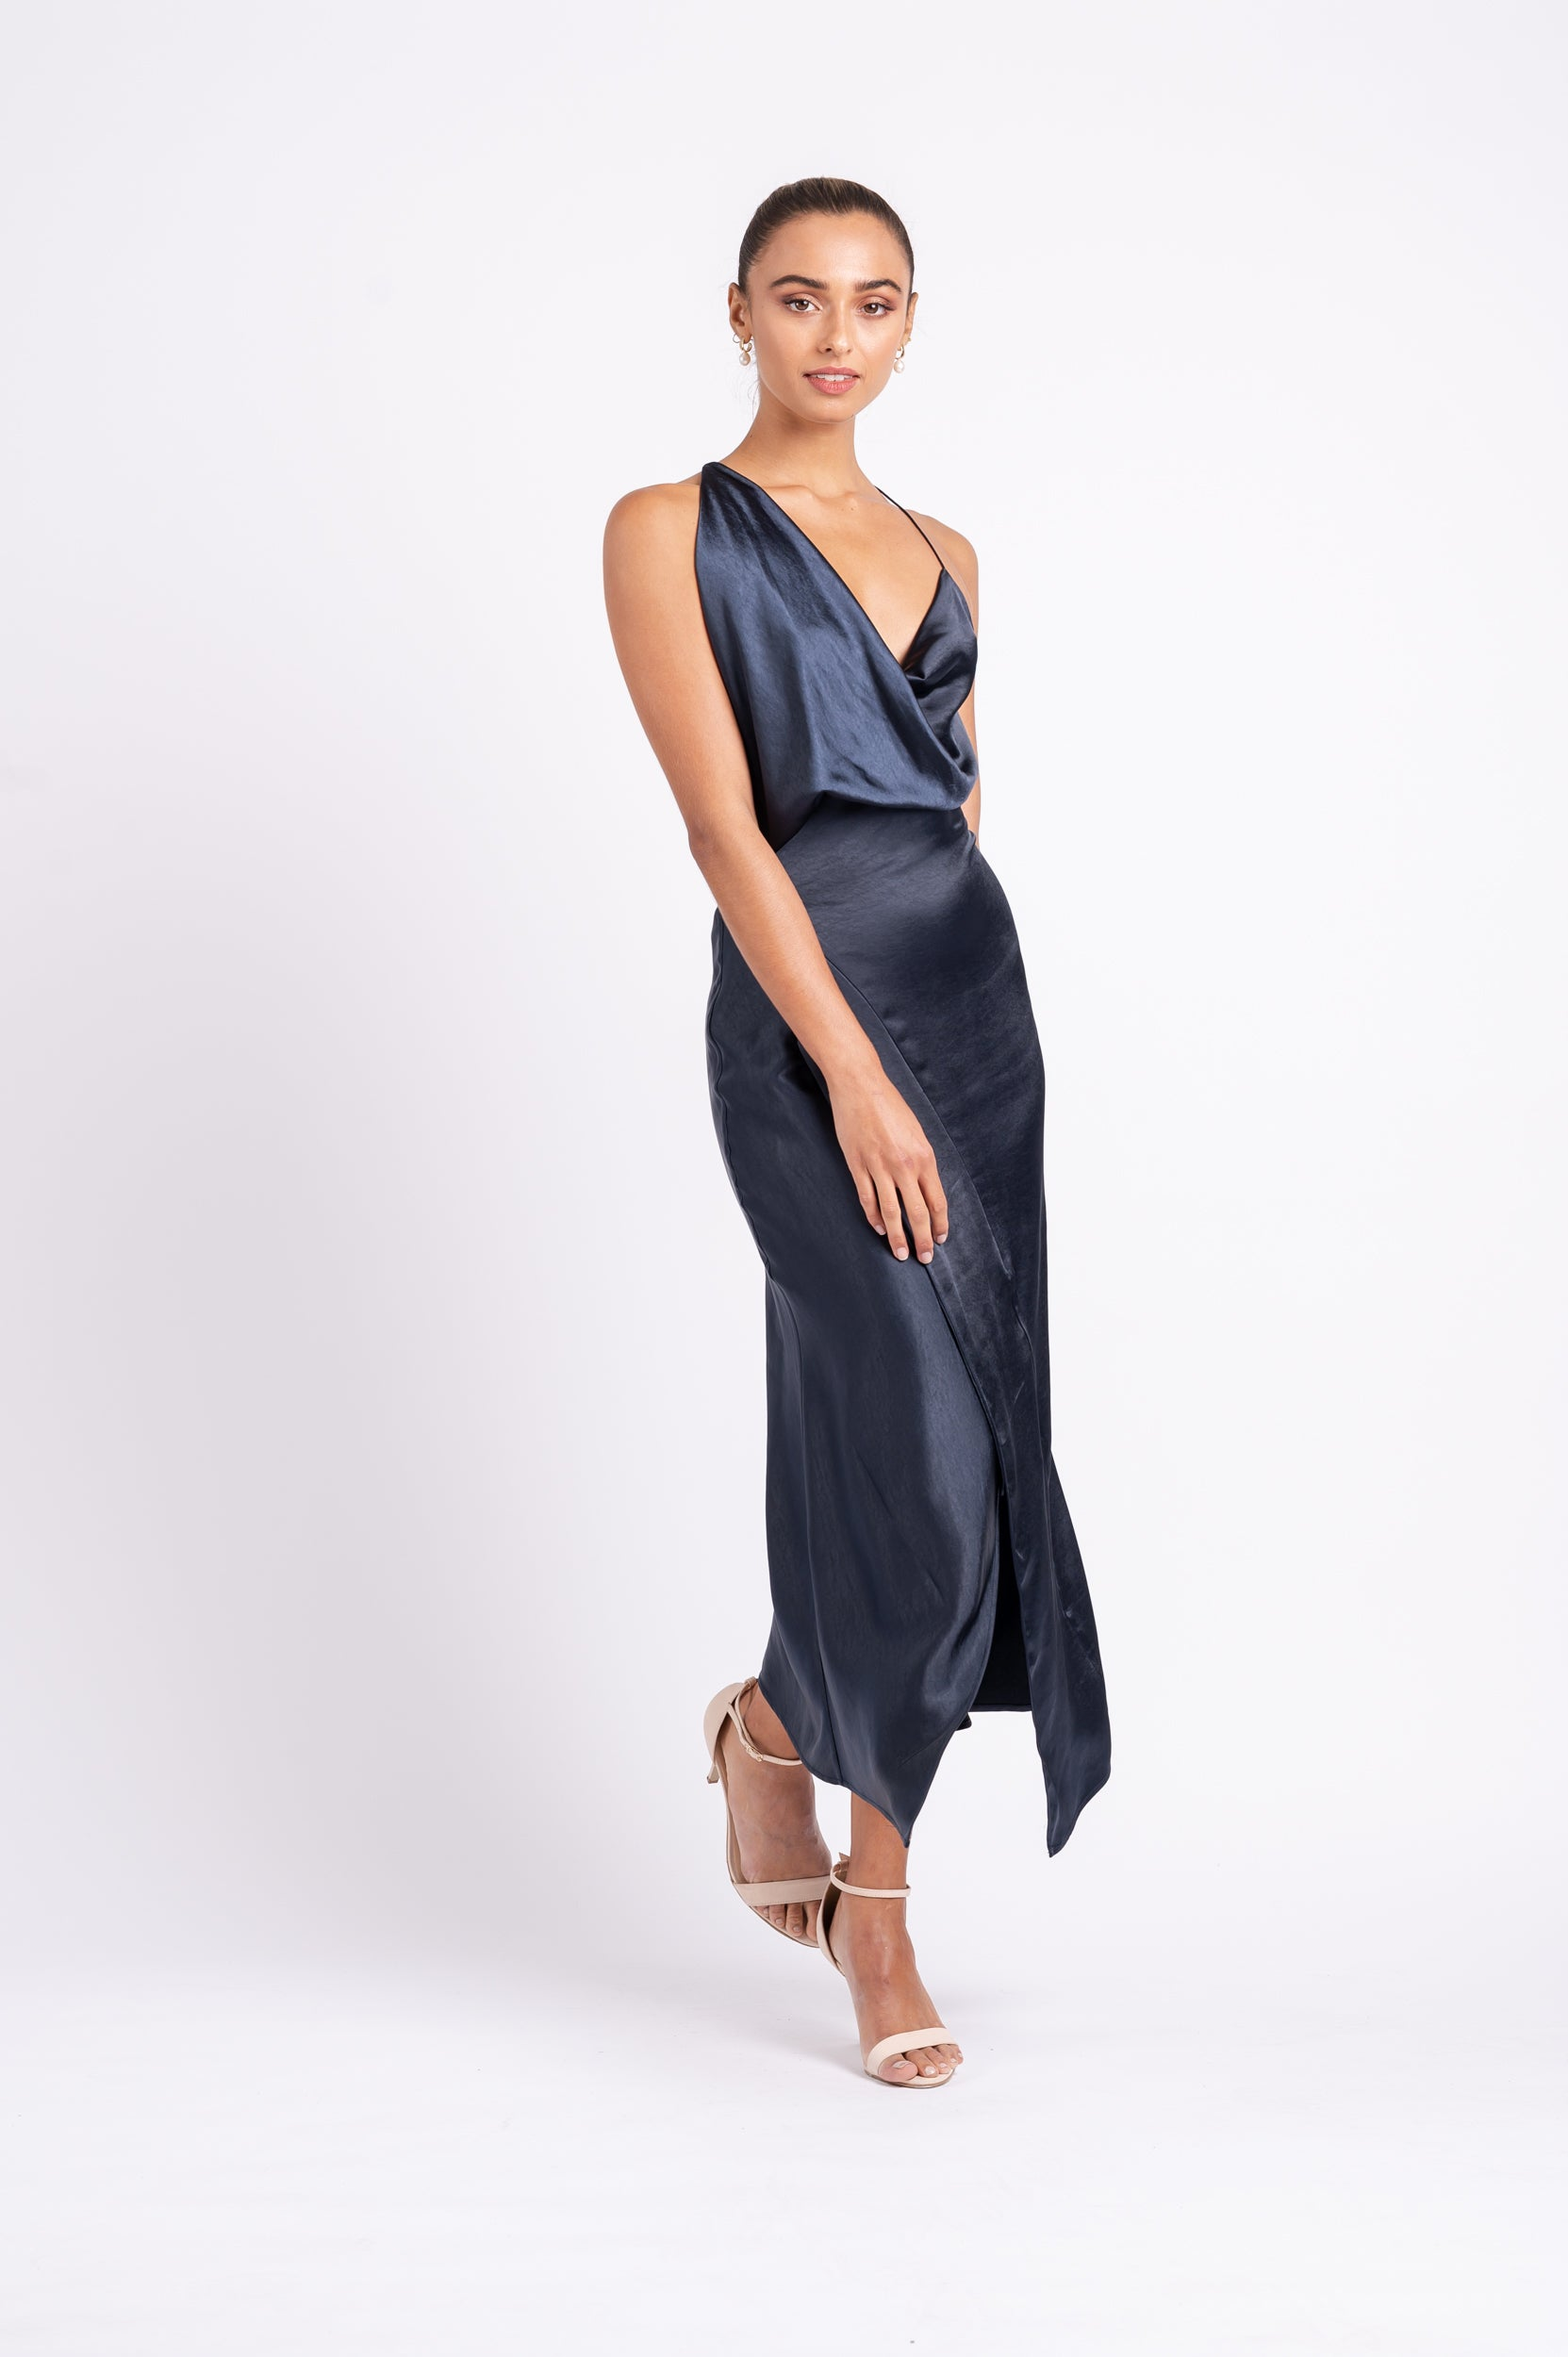 MUSE DRESS IN NAVY PO